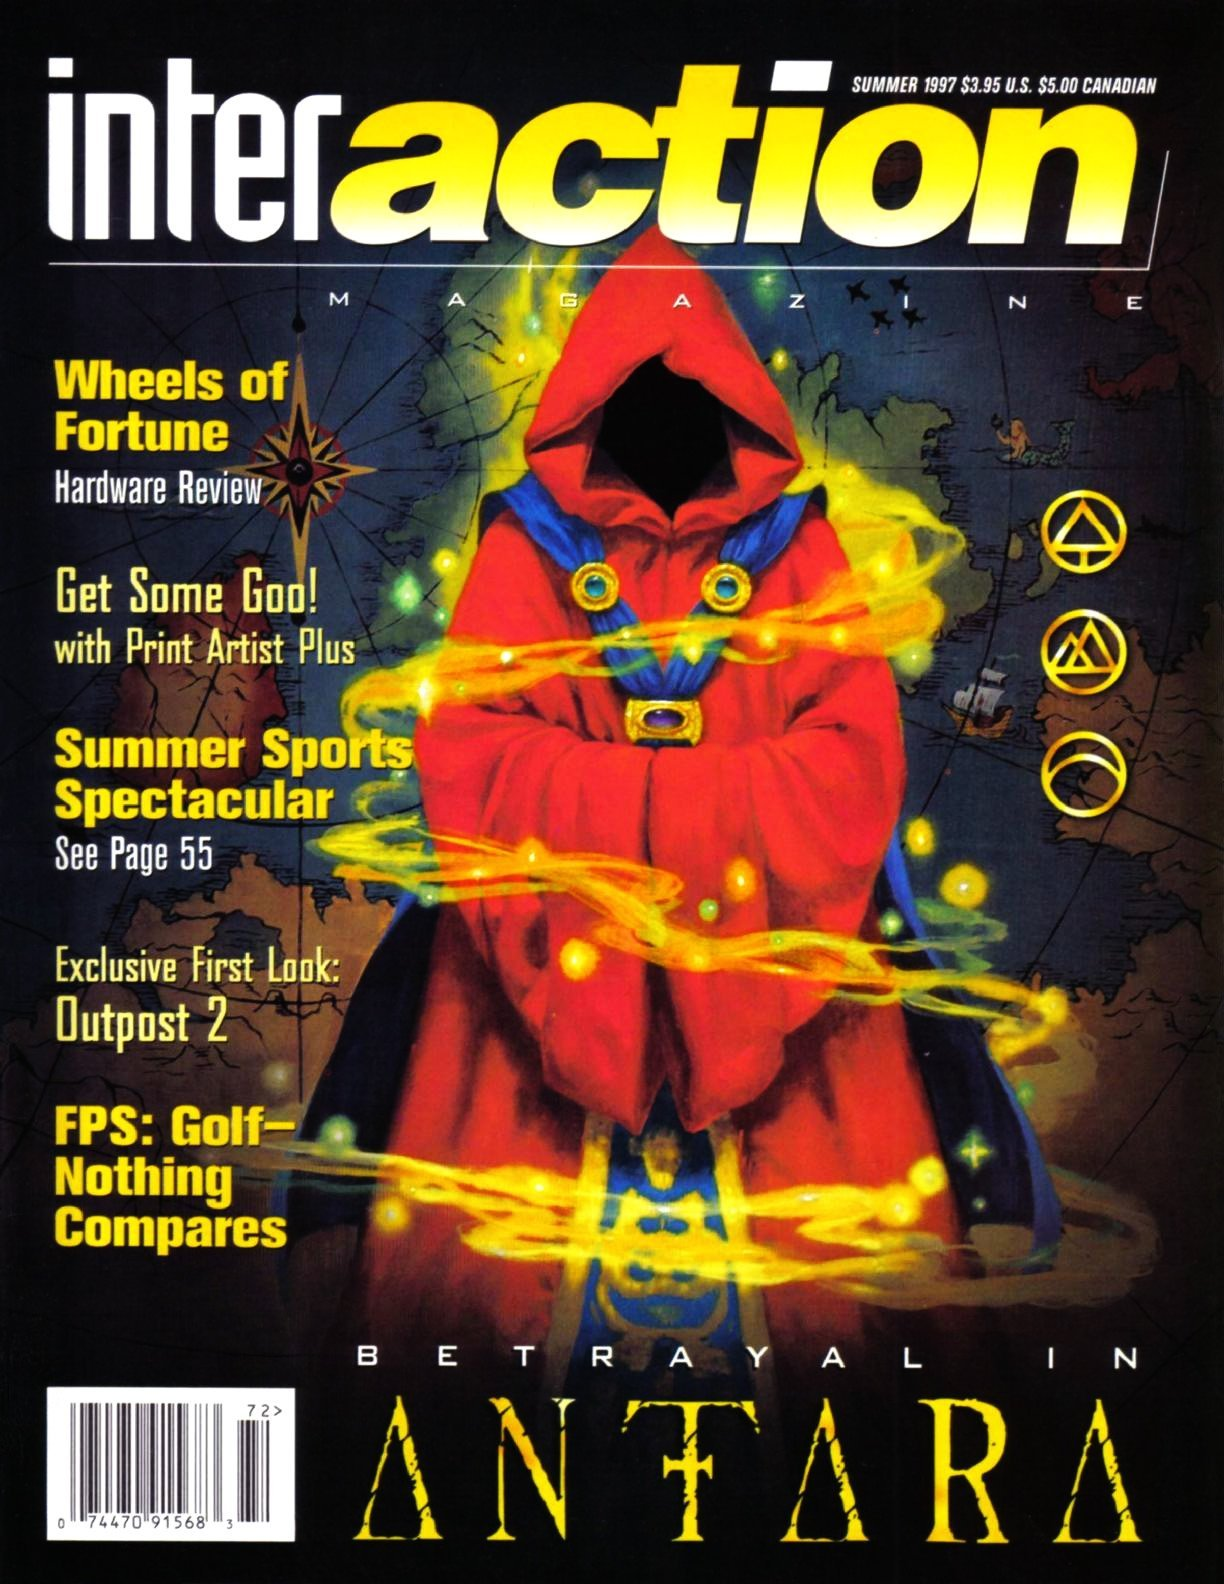 InterAction Issue 31 (Volume 10 Number 2) Summer 1997